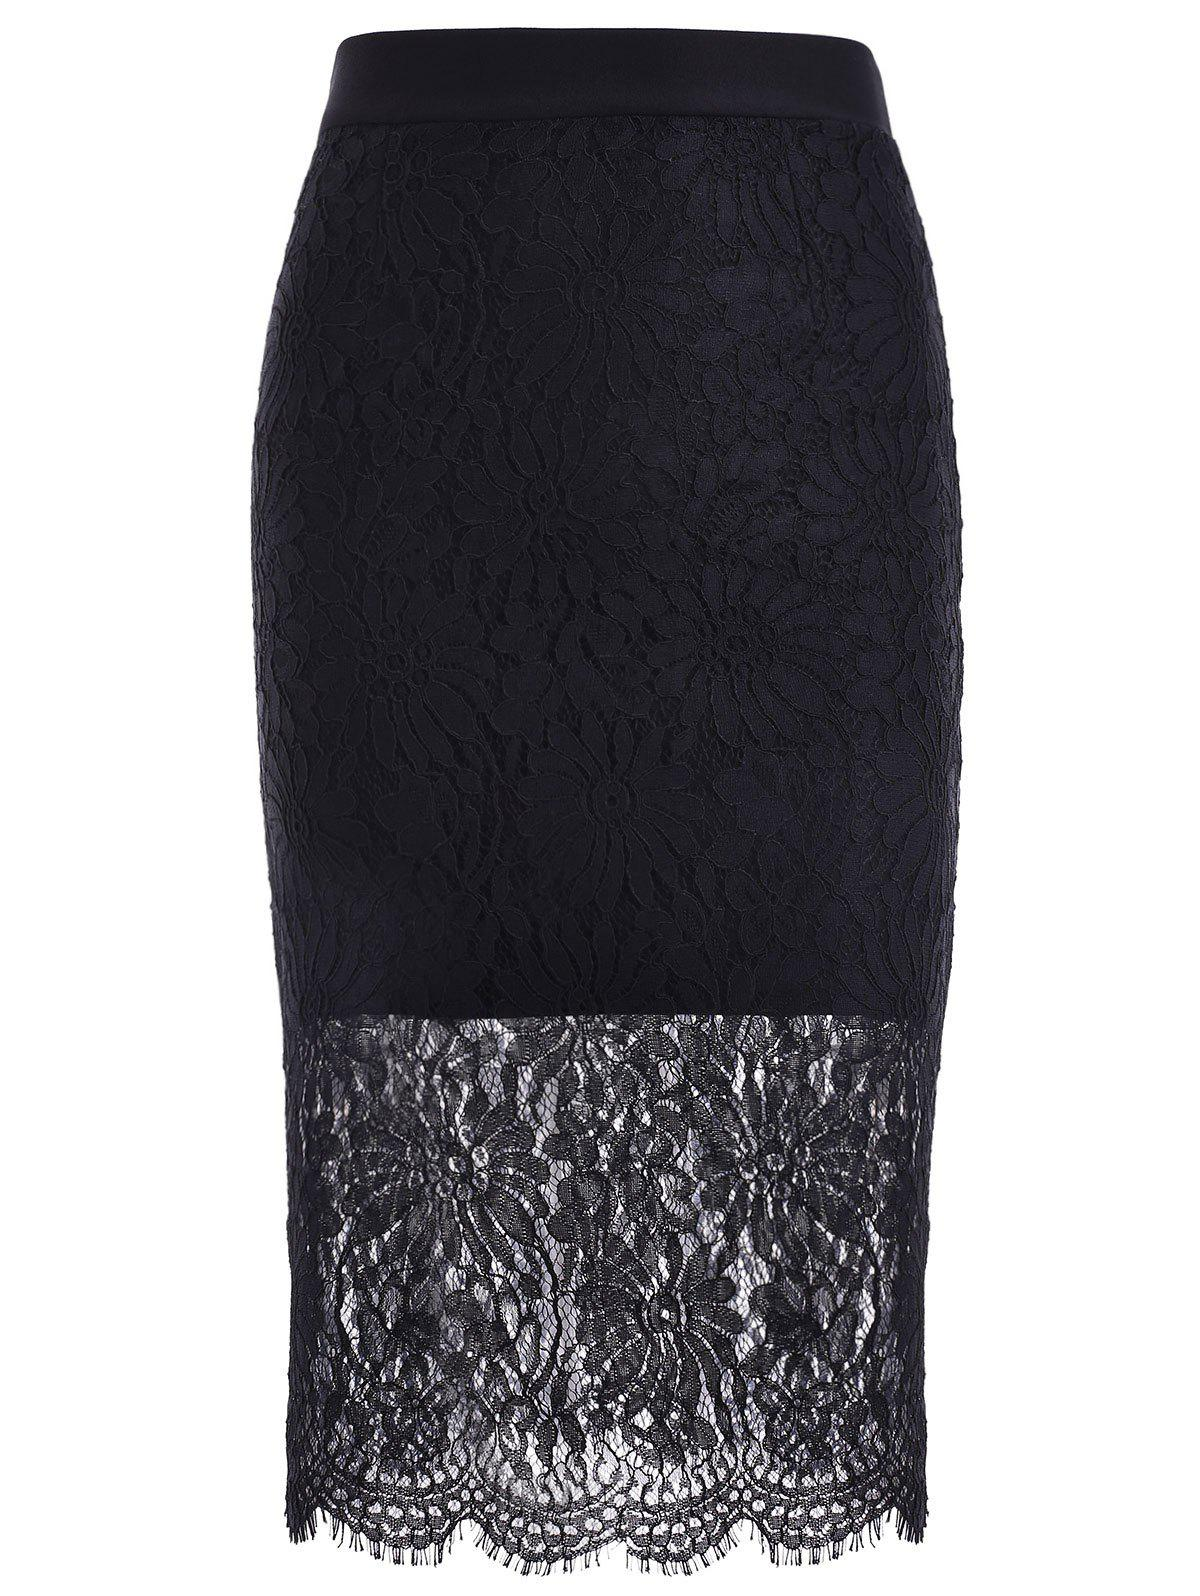 Trendy Lace Splicing Hollow Out Black Skinny Women's Skirt - BLACK ONE SIZE(FIT SIZE XS TO M)